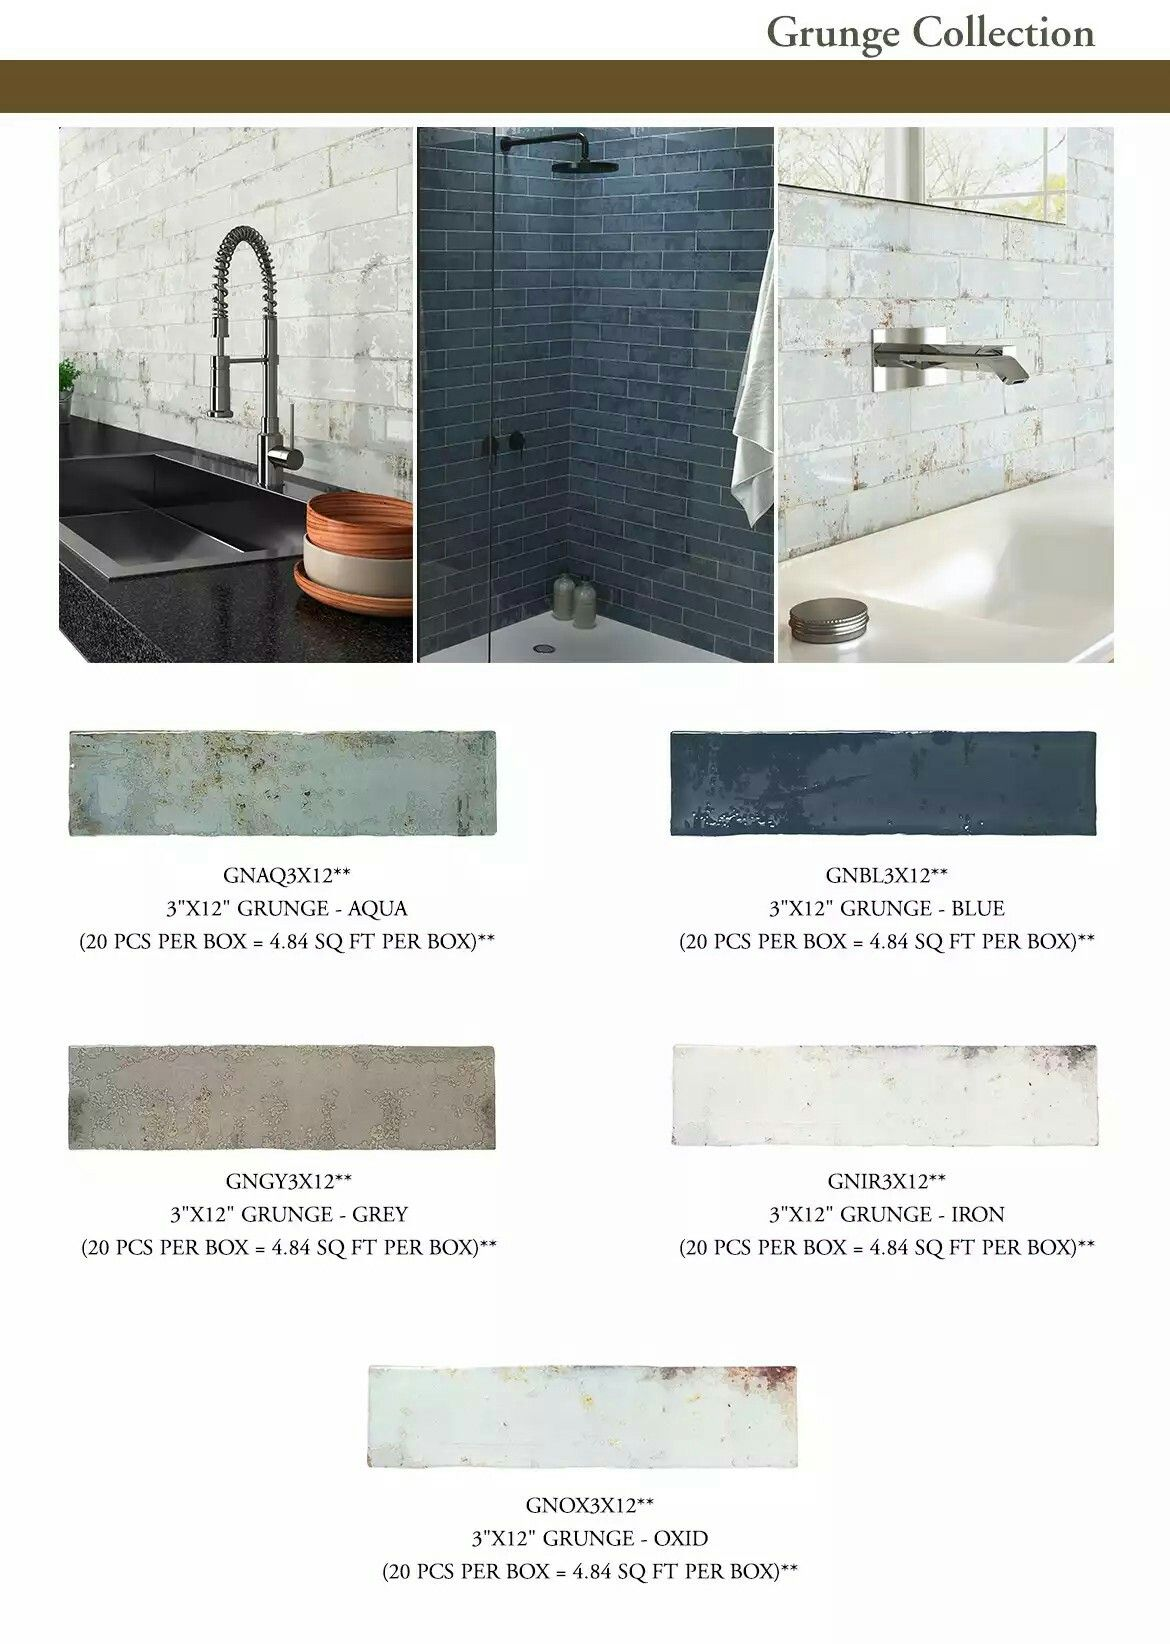 grunge 3x12 speartek subway backsplash in 2019 house tiles rh pinterest com